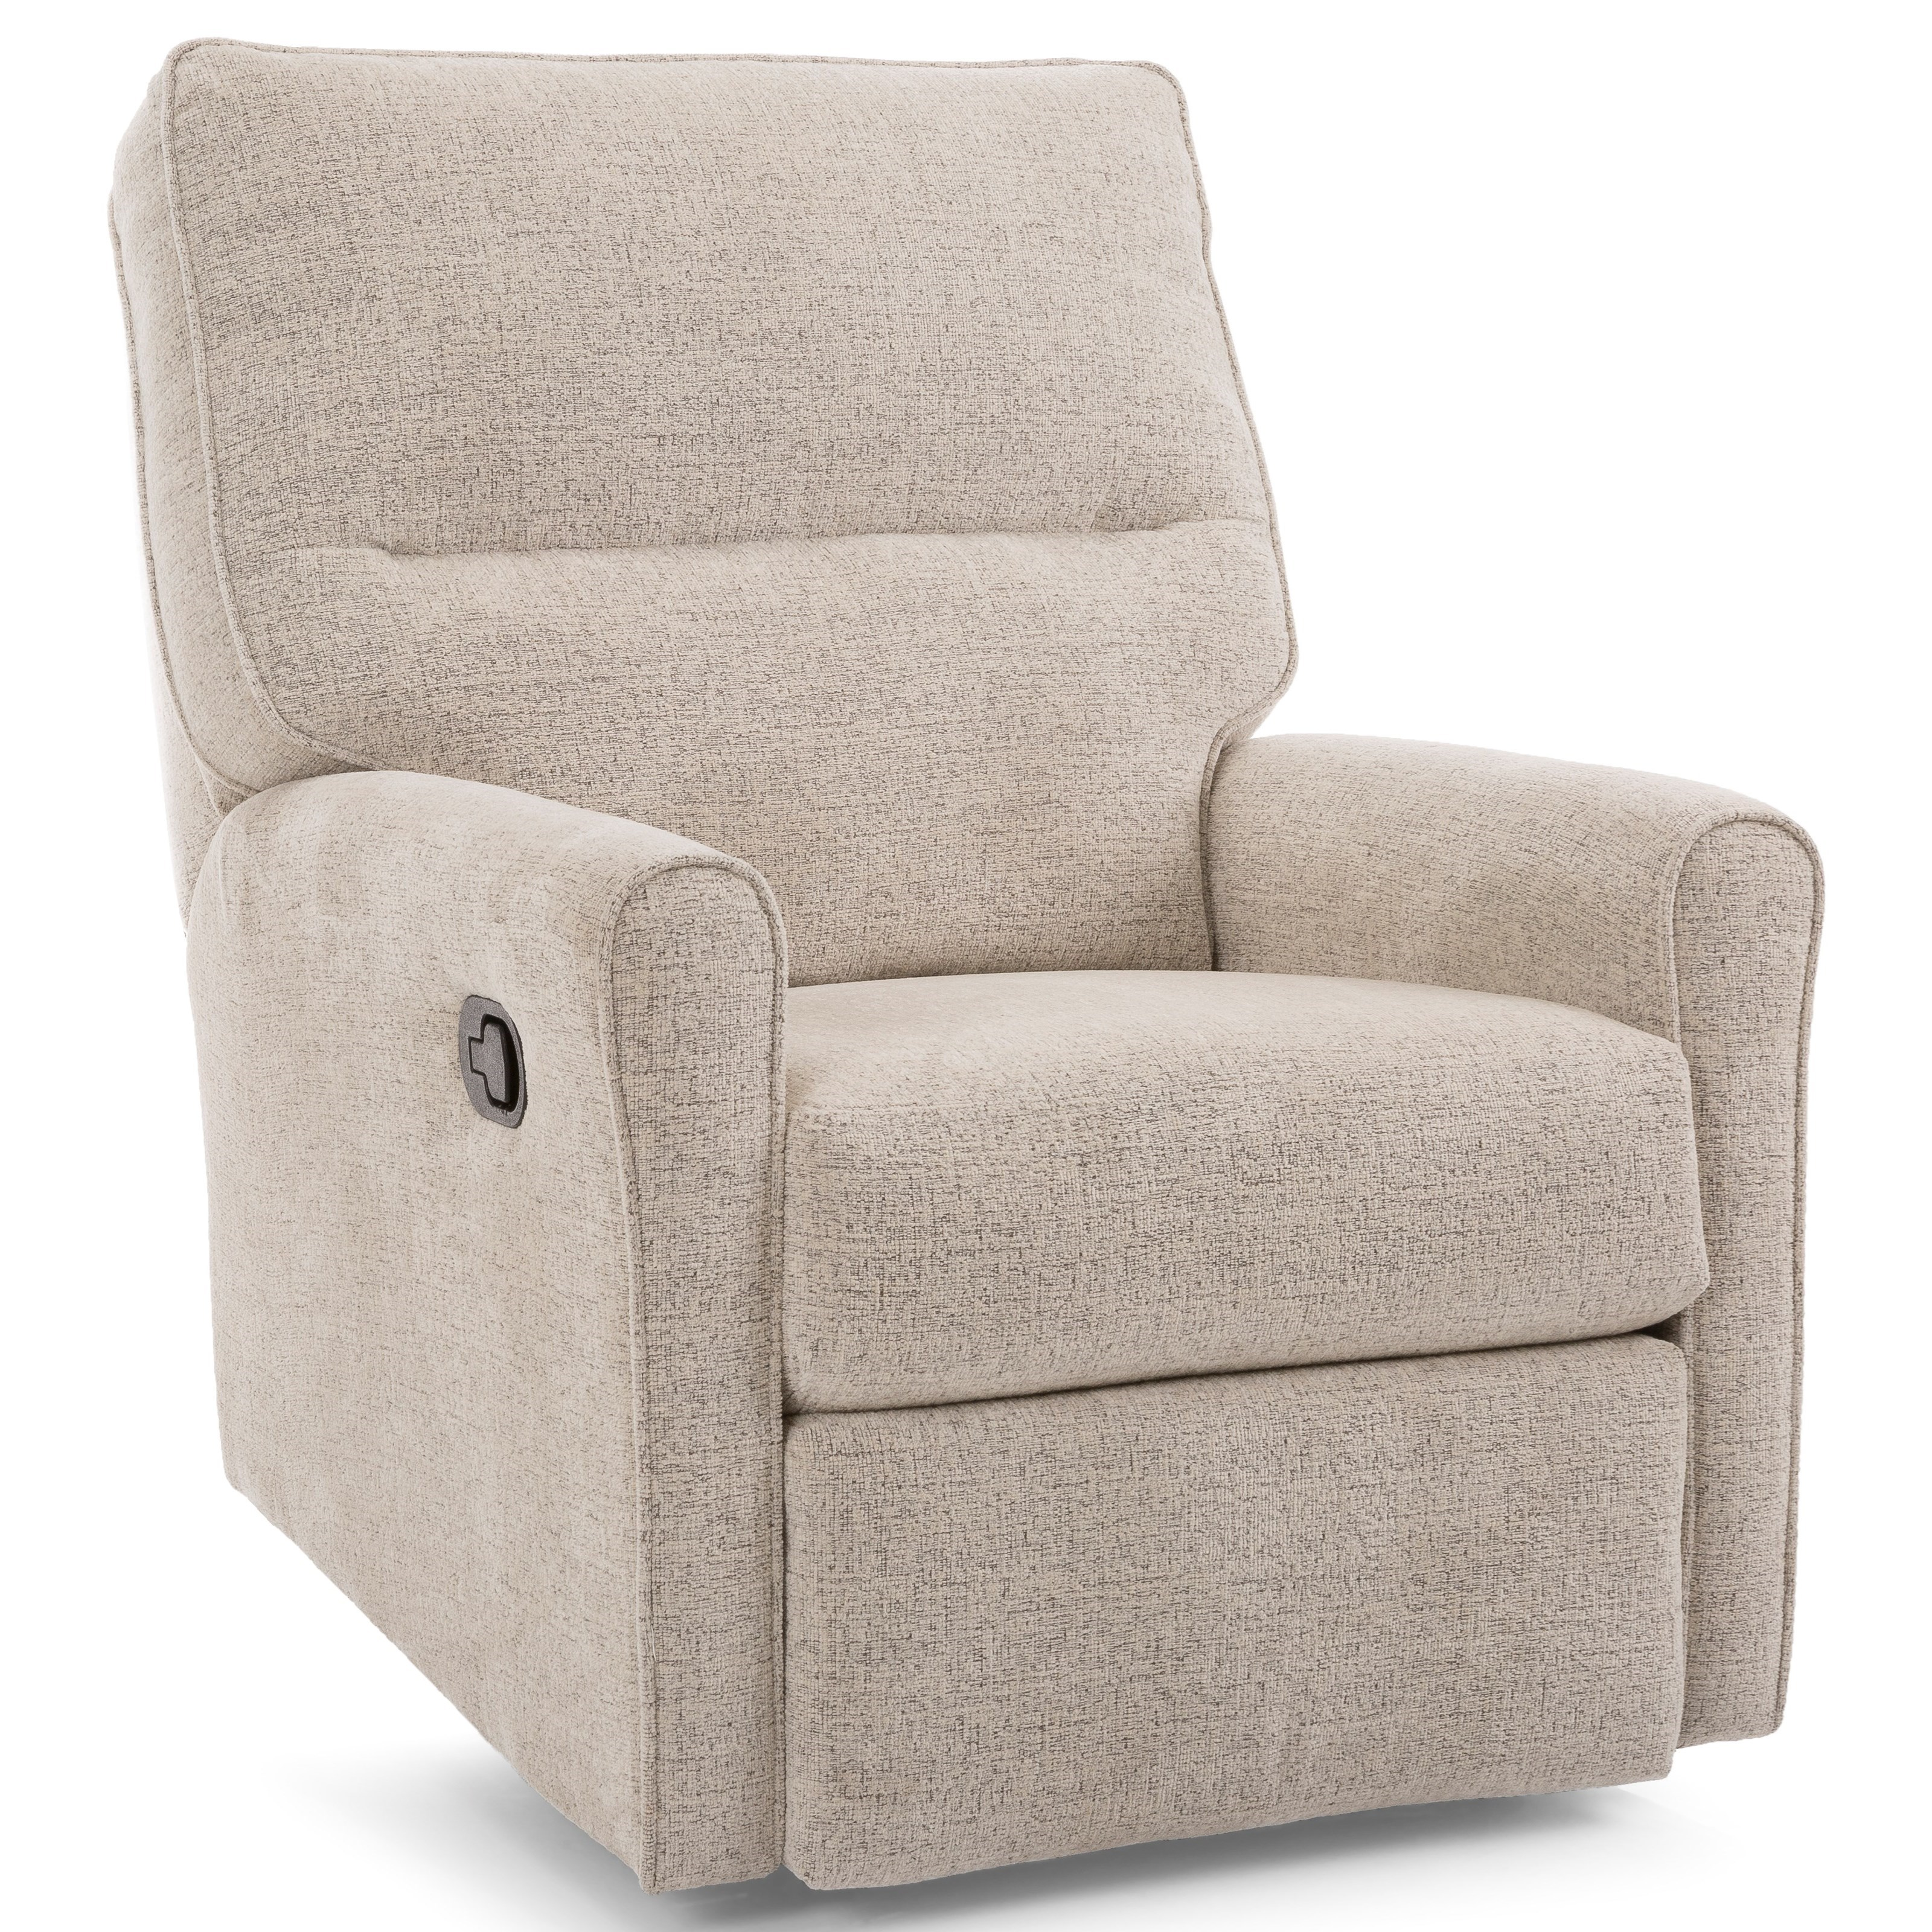 M846 Power Glider Recliner by Decor-Rest at Johnny Janosik